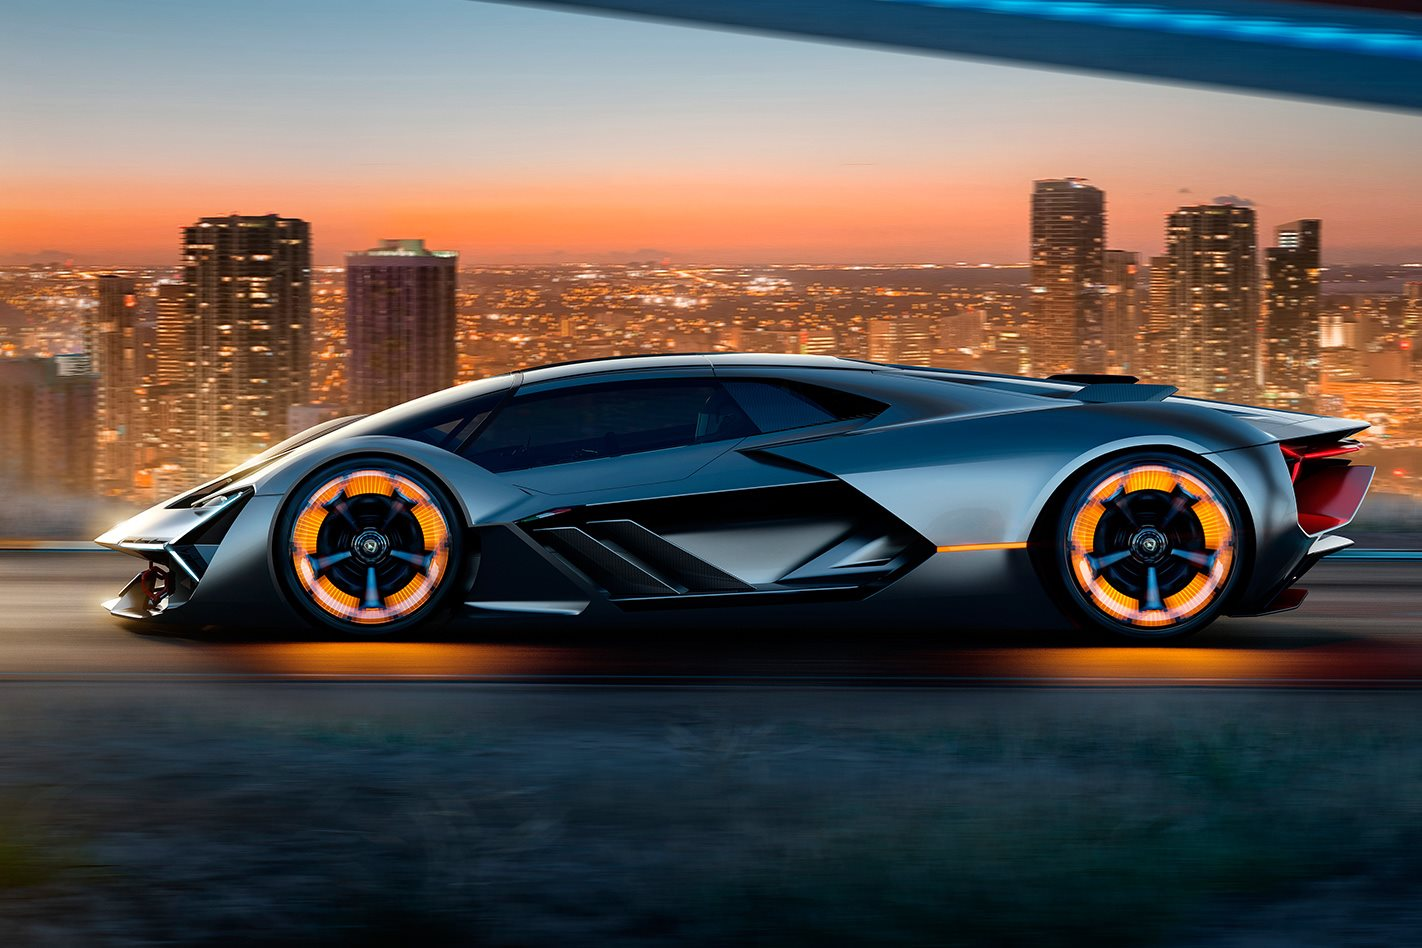 Lamborghini sets sights on electrified future with Terzo Millennio concept